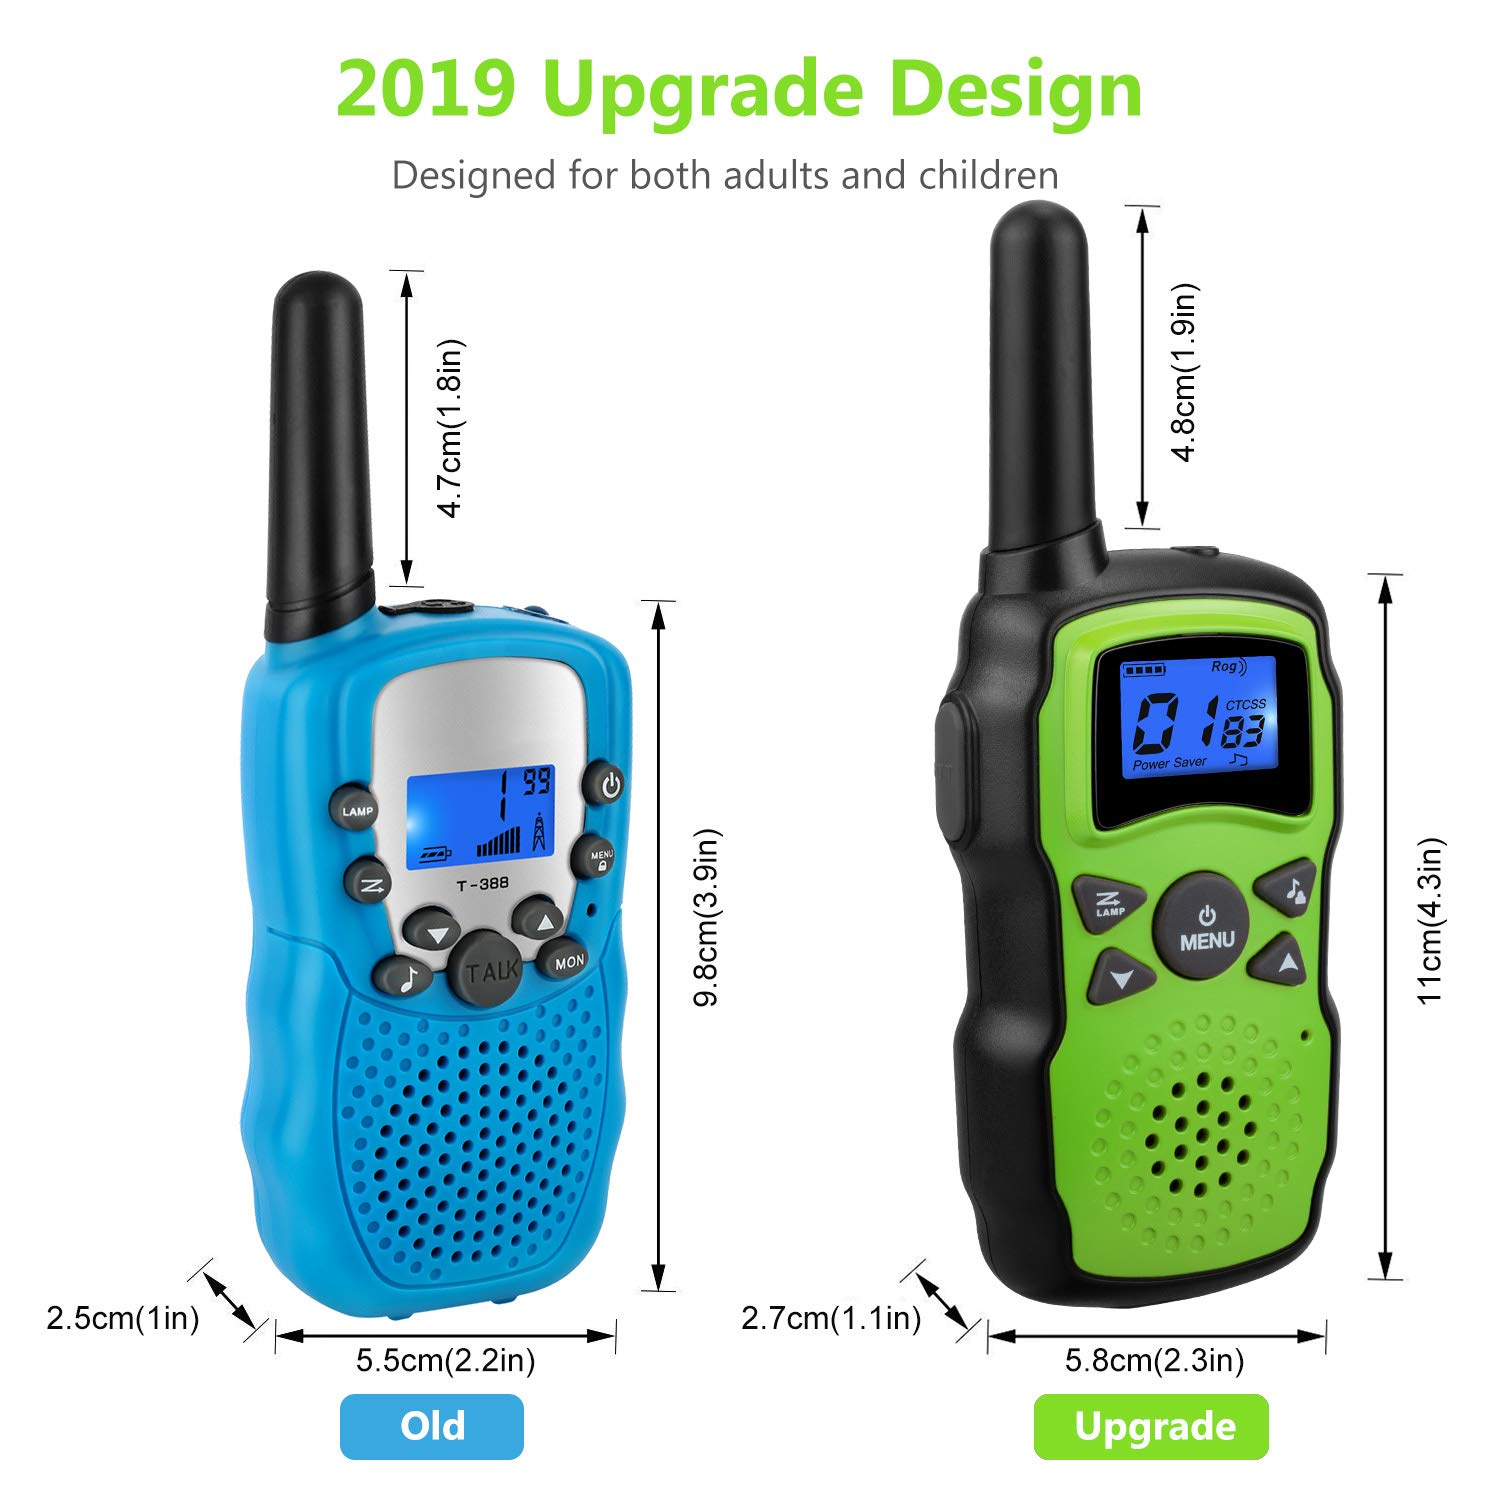 Wishouse 2 Rechargeable Walkie Talkies for Kids with Charger Battery, Two Way Radio Family Talkabout for Adult Cruise Ship Long Range, Outdoor Camping Hiking Fun Toy Birthday Gift for Girls Boys Green by Wishouse (Image #4)